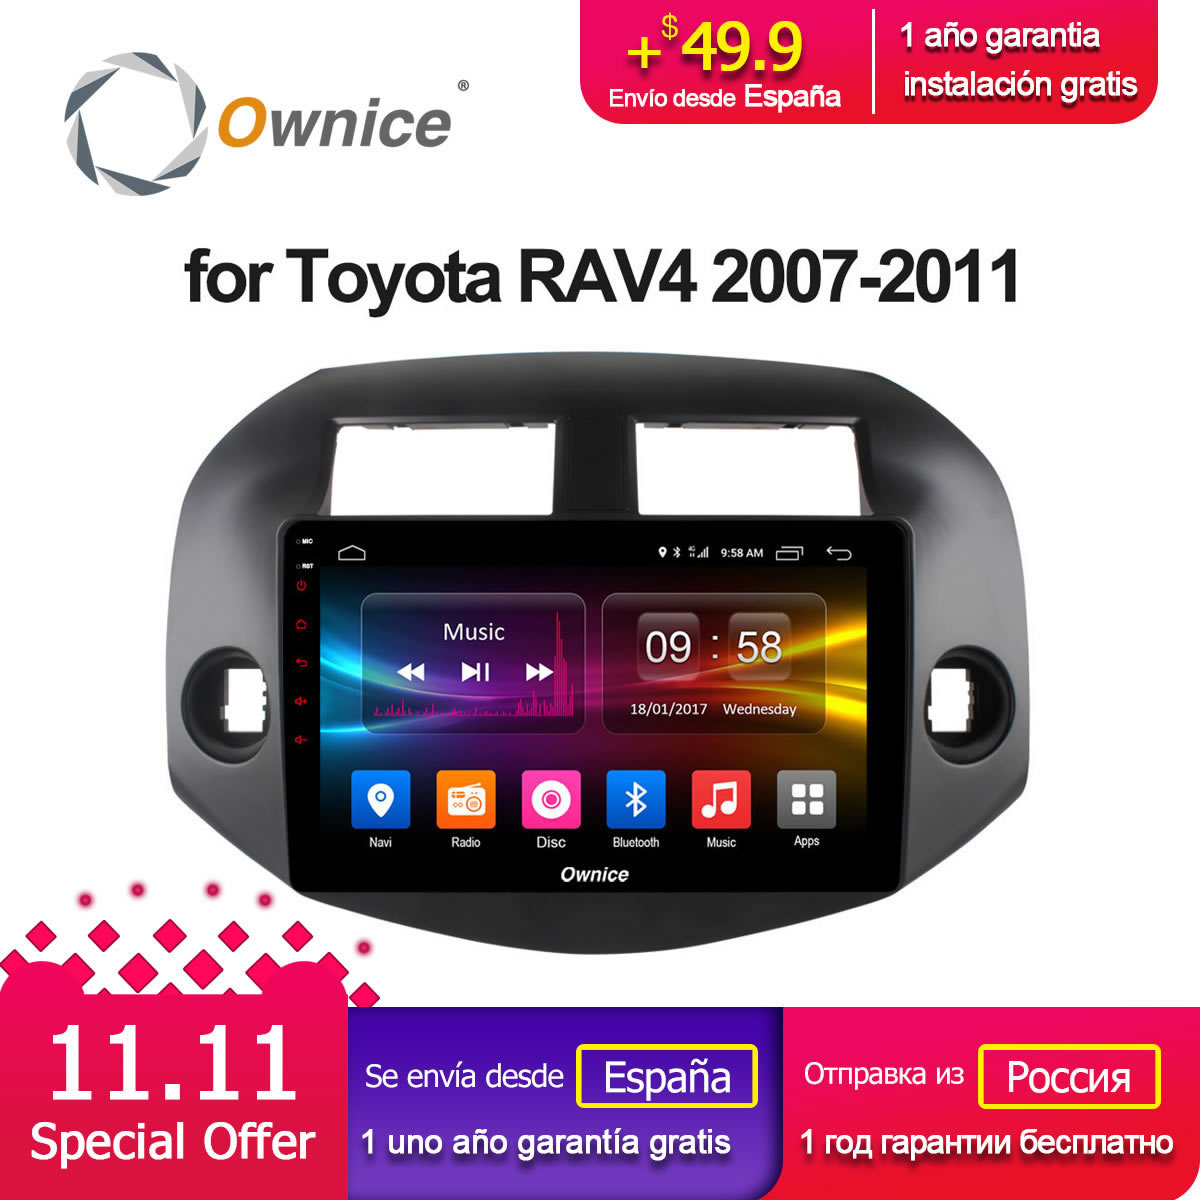 Ownice C500+ G10 Android 8.1 Octa Core 10.1 Car Radio Player Stereo GPS For TOYOTA RAV4 2007 2008 2009 2010 2011 2G RAM 32G ROM 10 1 ownice c500 g10 octa 8 core android 8 1 car dvd gps player for toyota tundra 2007 2013 sequoia 2008 2018 stereo radio